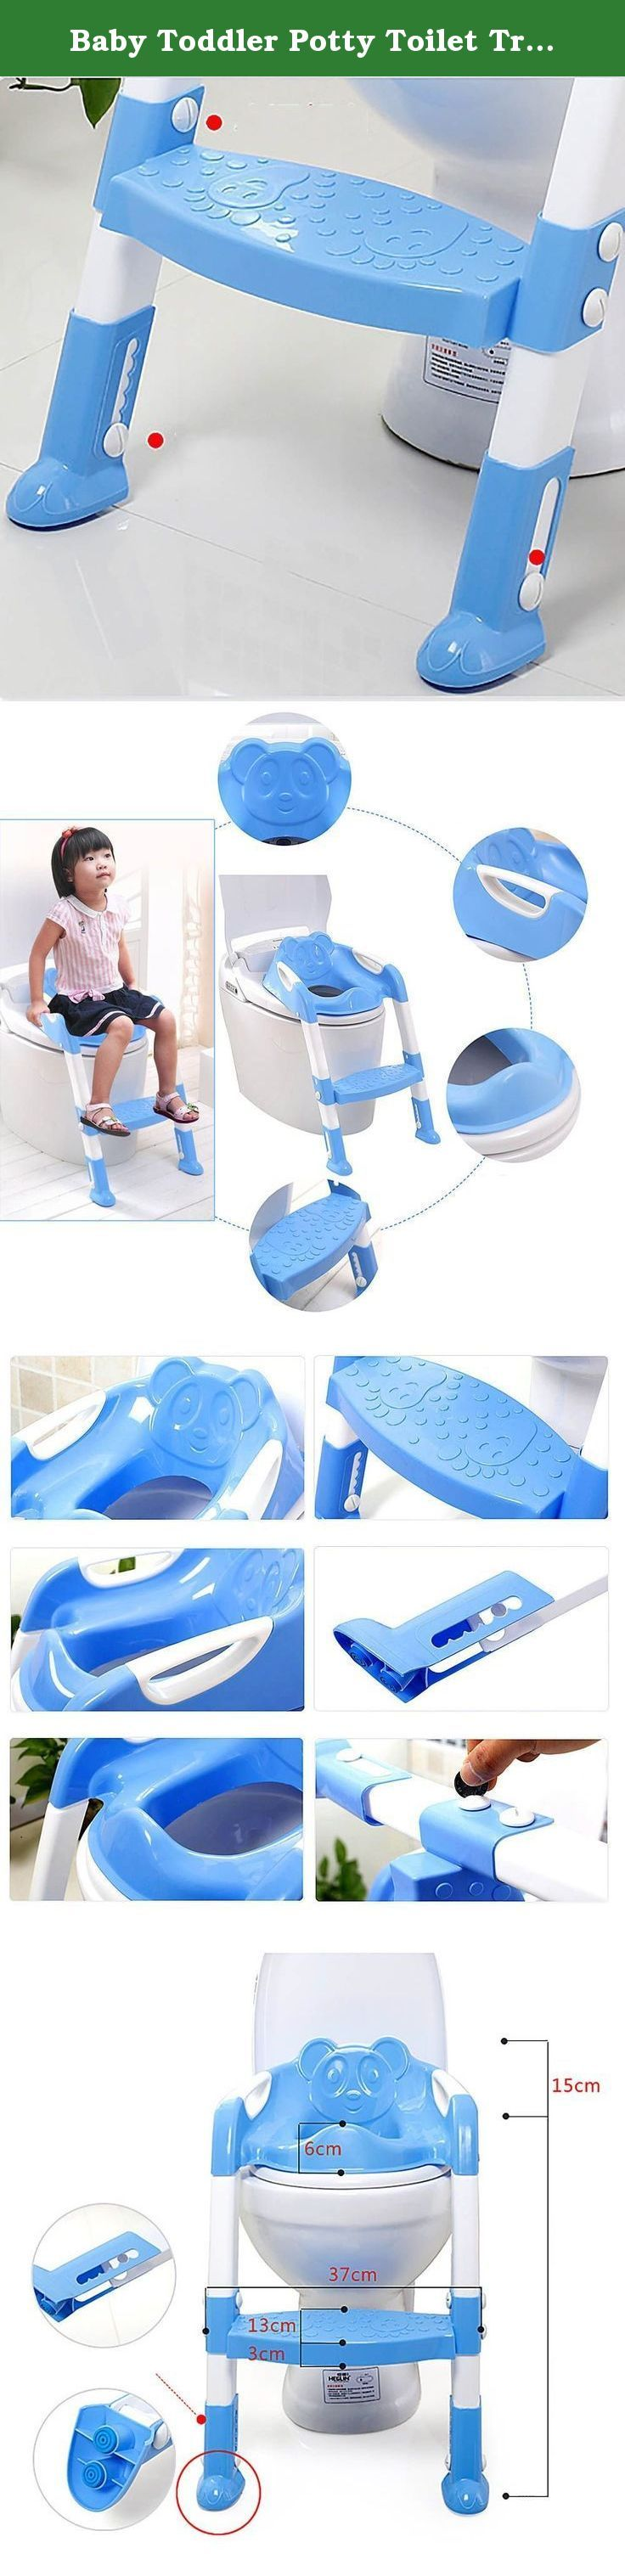 206 best potty training baby products images on pinterest baby